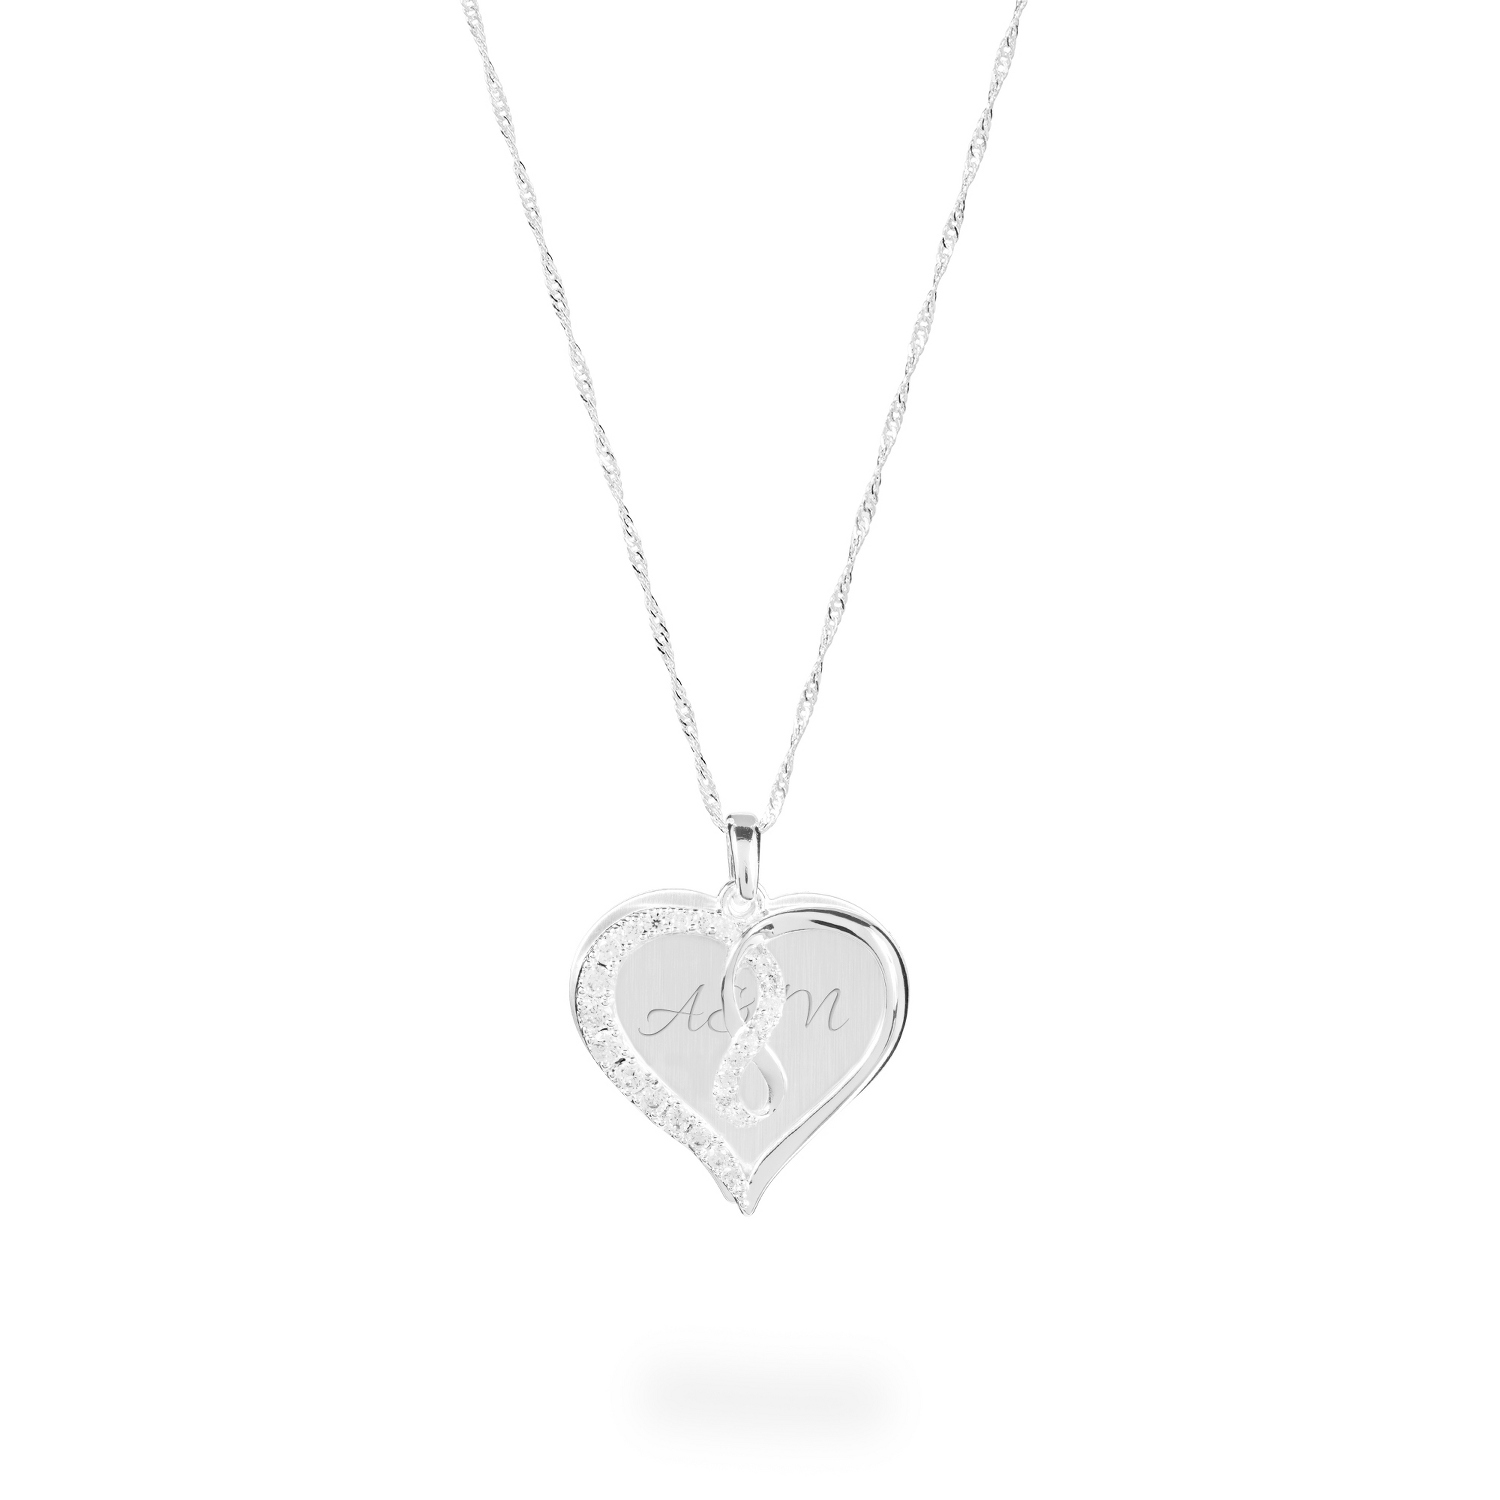 dc357c0c44bfc Infinity Heart Crystal Swing Necklace